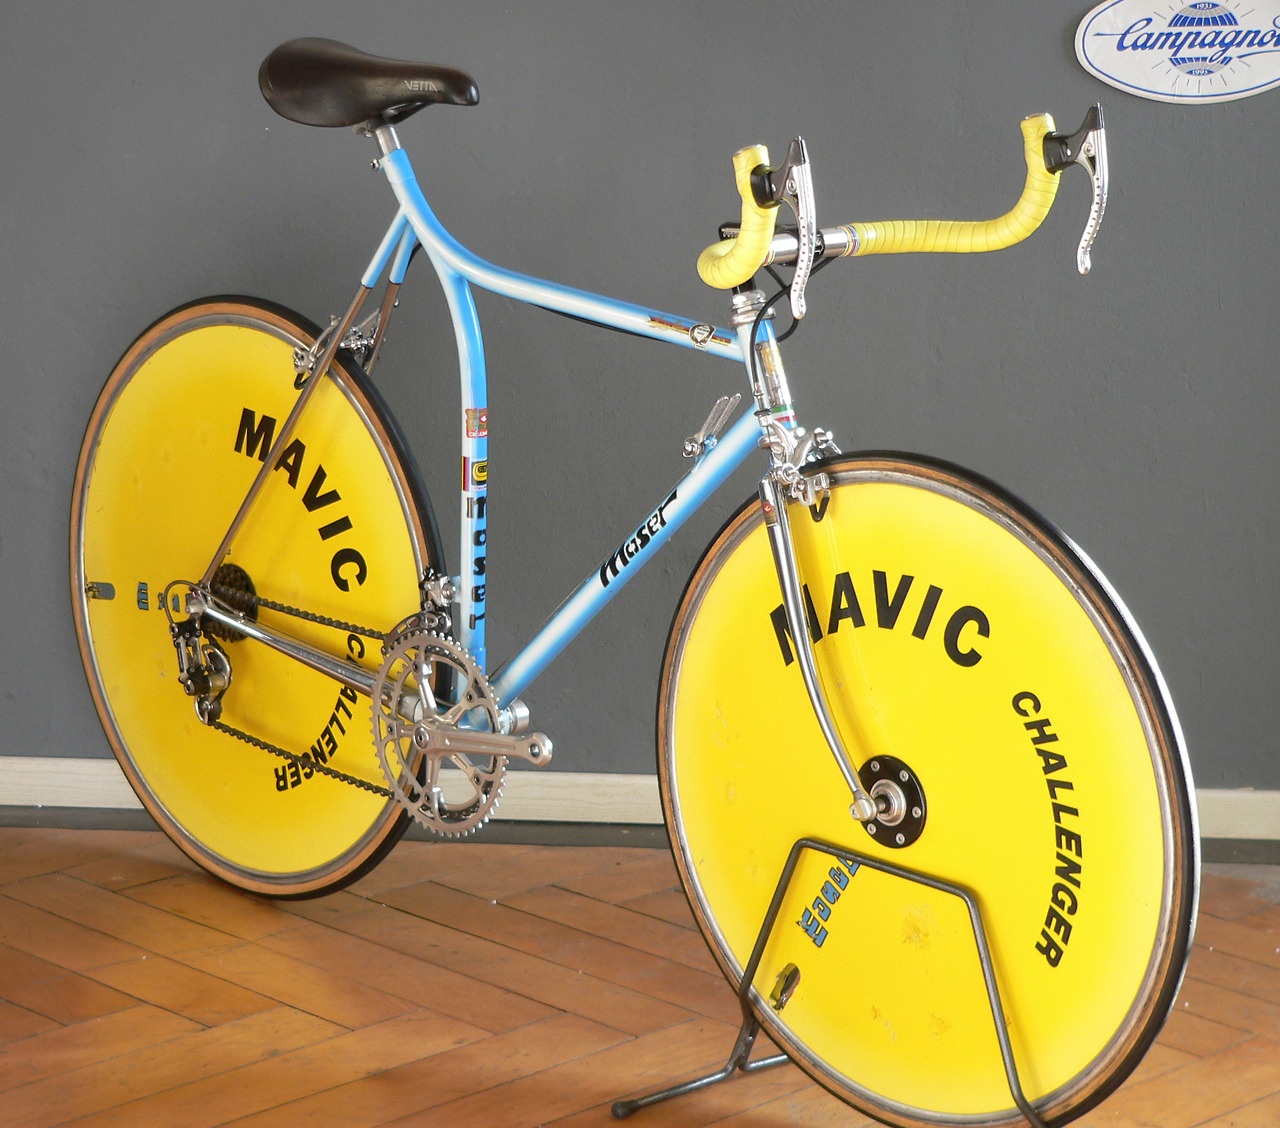 Love the yellow Mavic disc wheels!